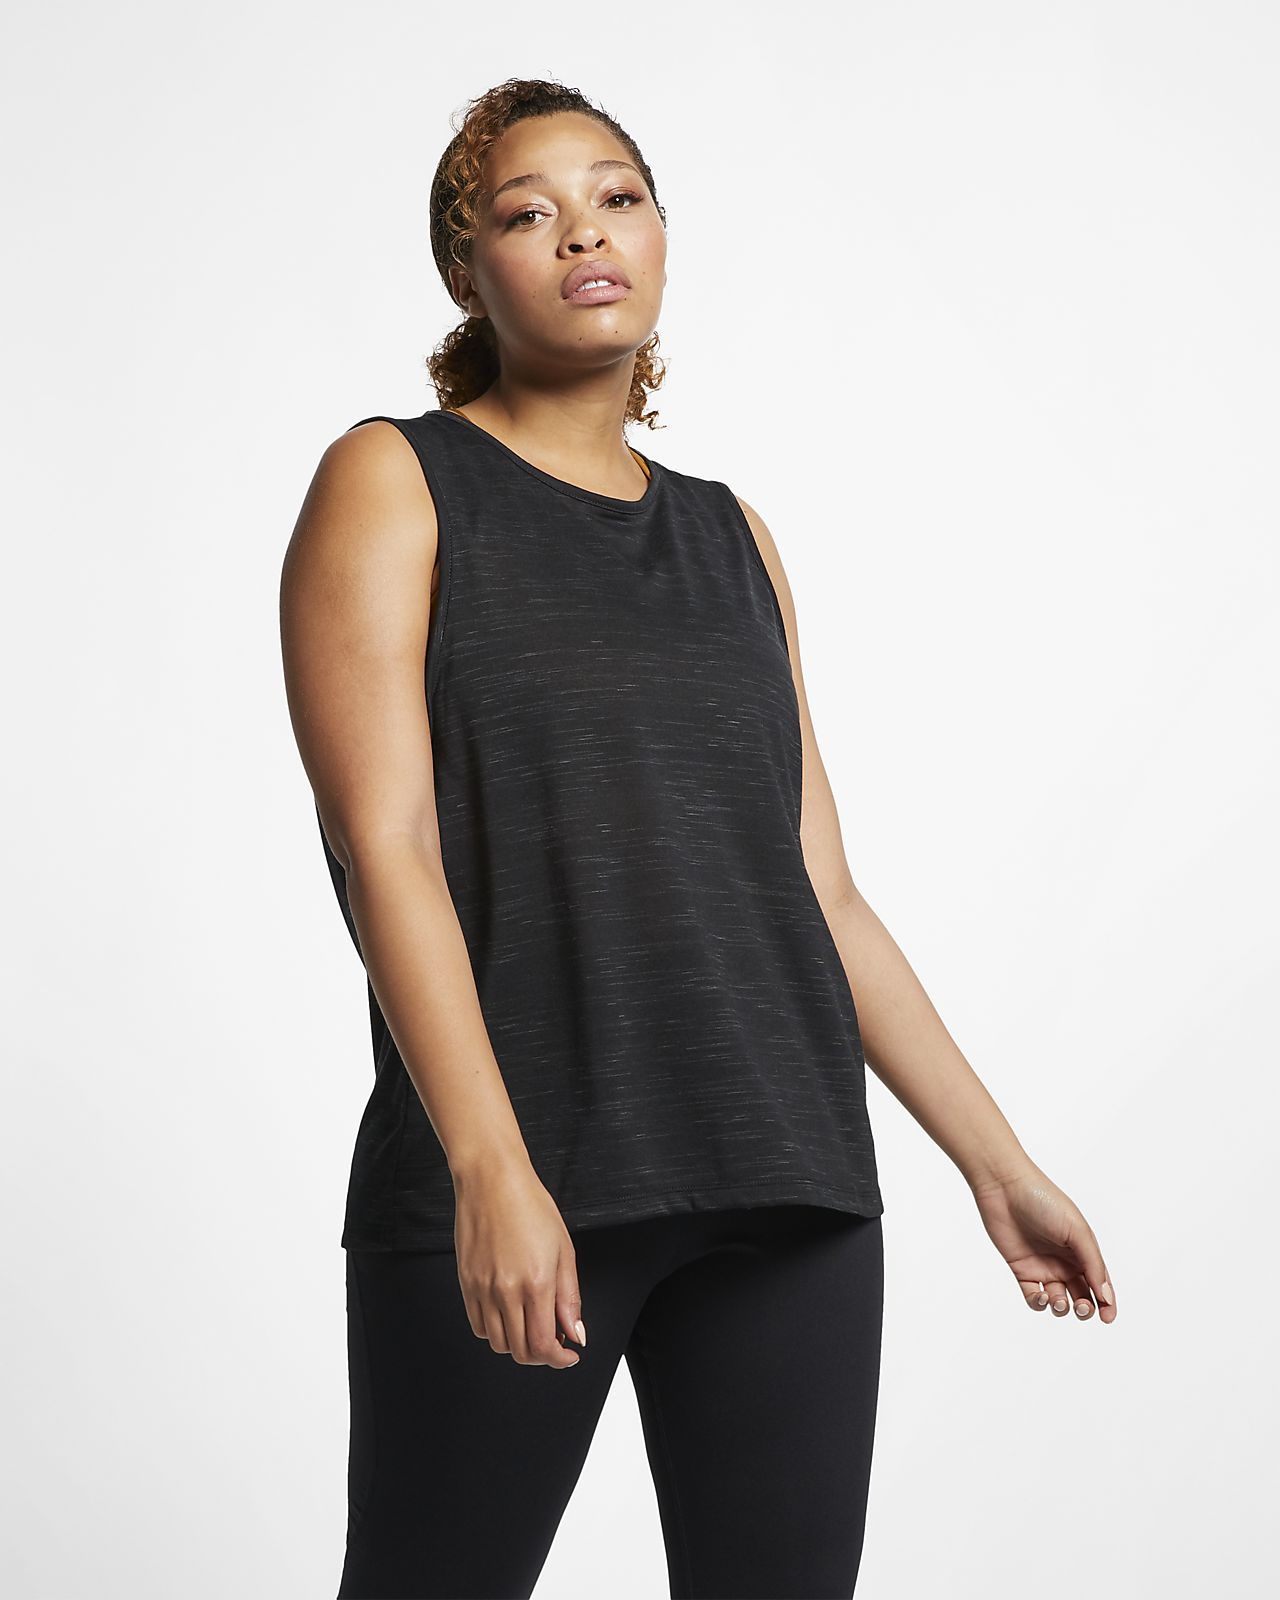 Nike Dri-FIT Legend Women's Training Top